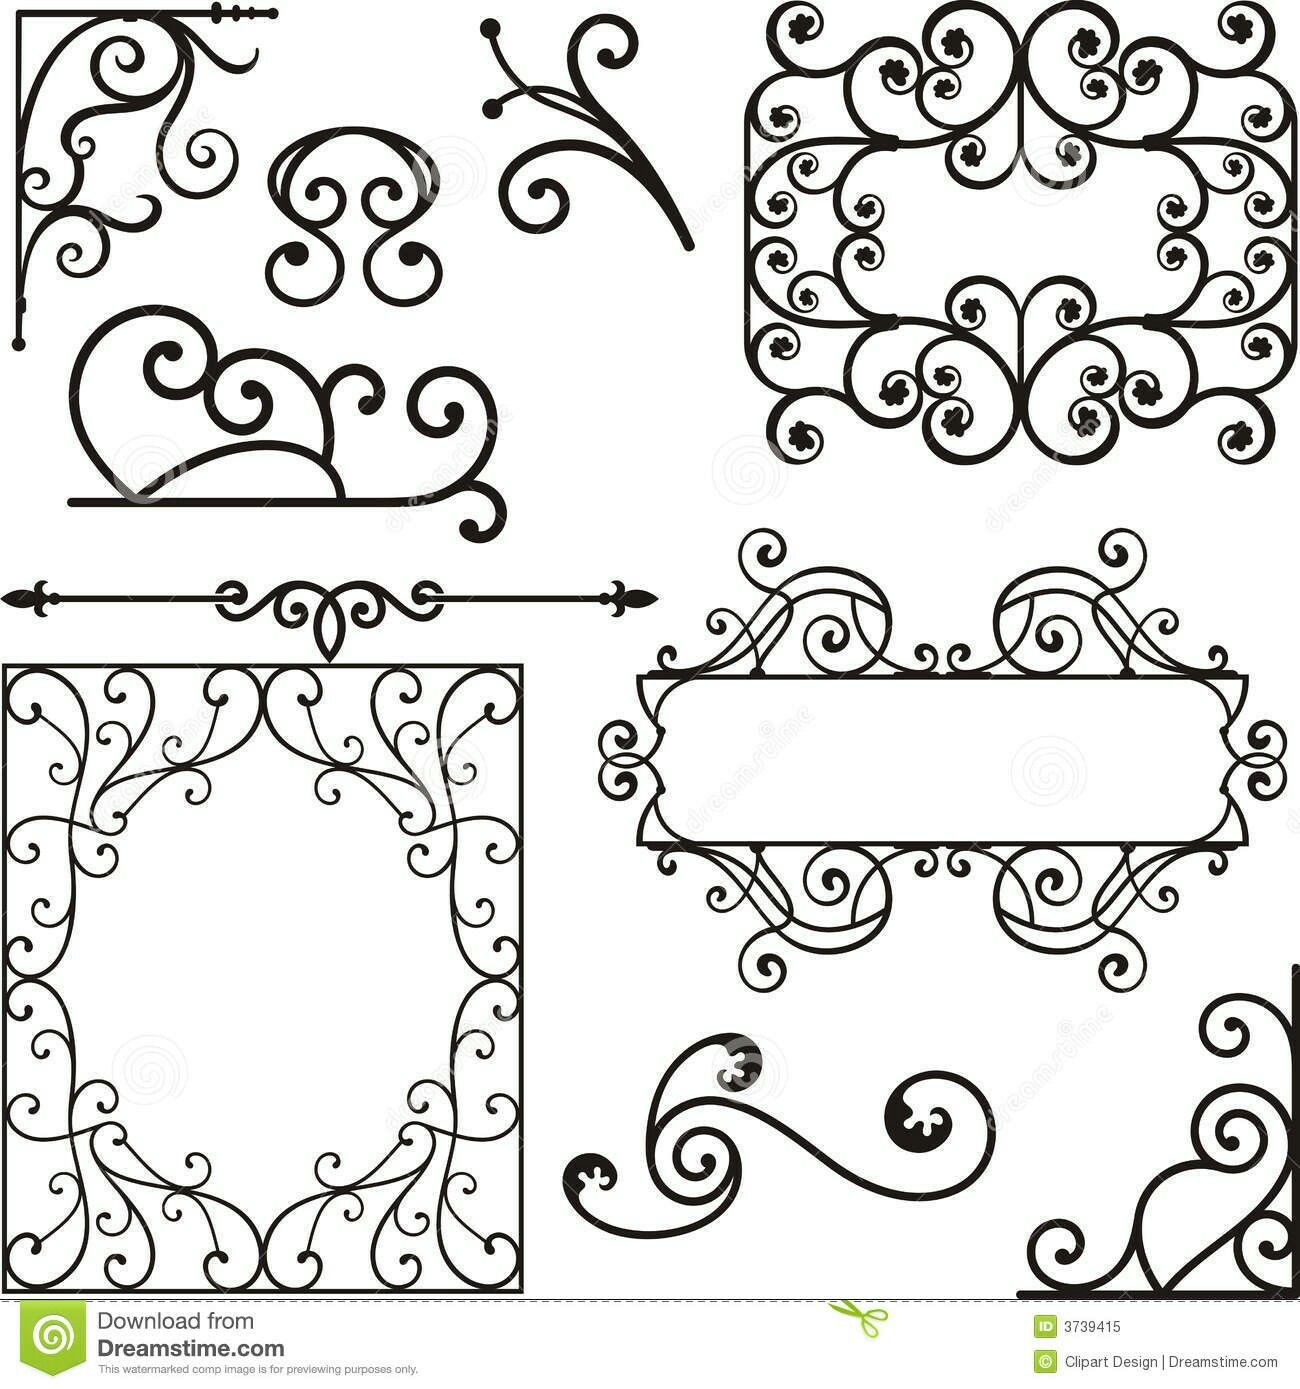 Wrought iron pattern clipart clipart transparent library Pin by Trish Thorpe on House | Wrought iron, Ornaments ... clipart transparent library